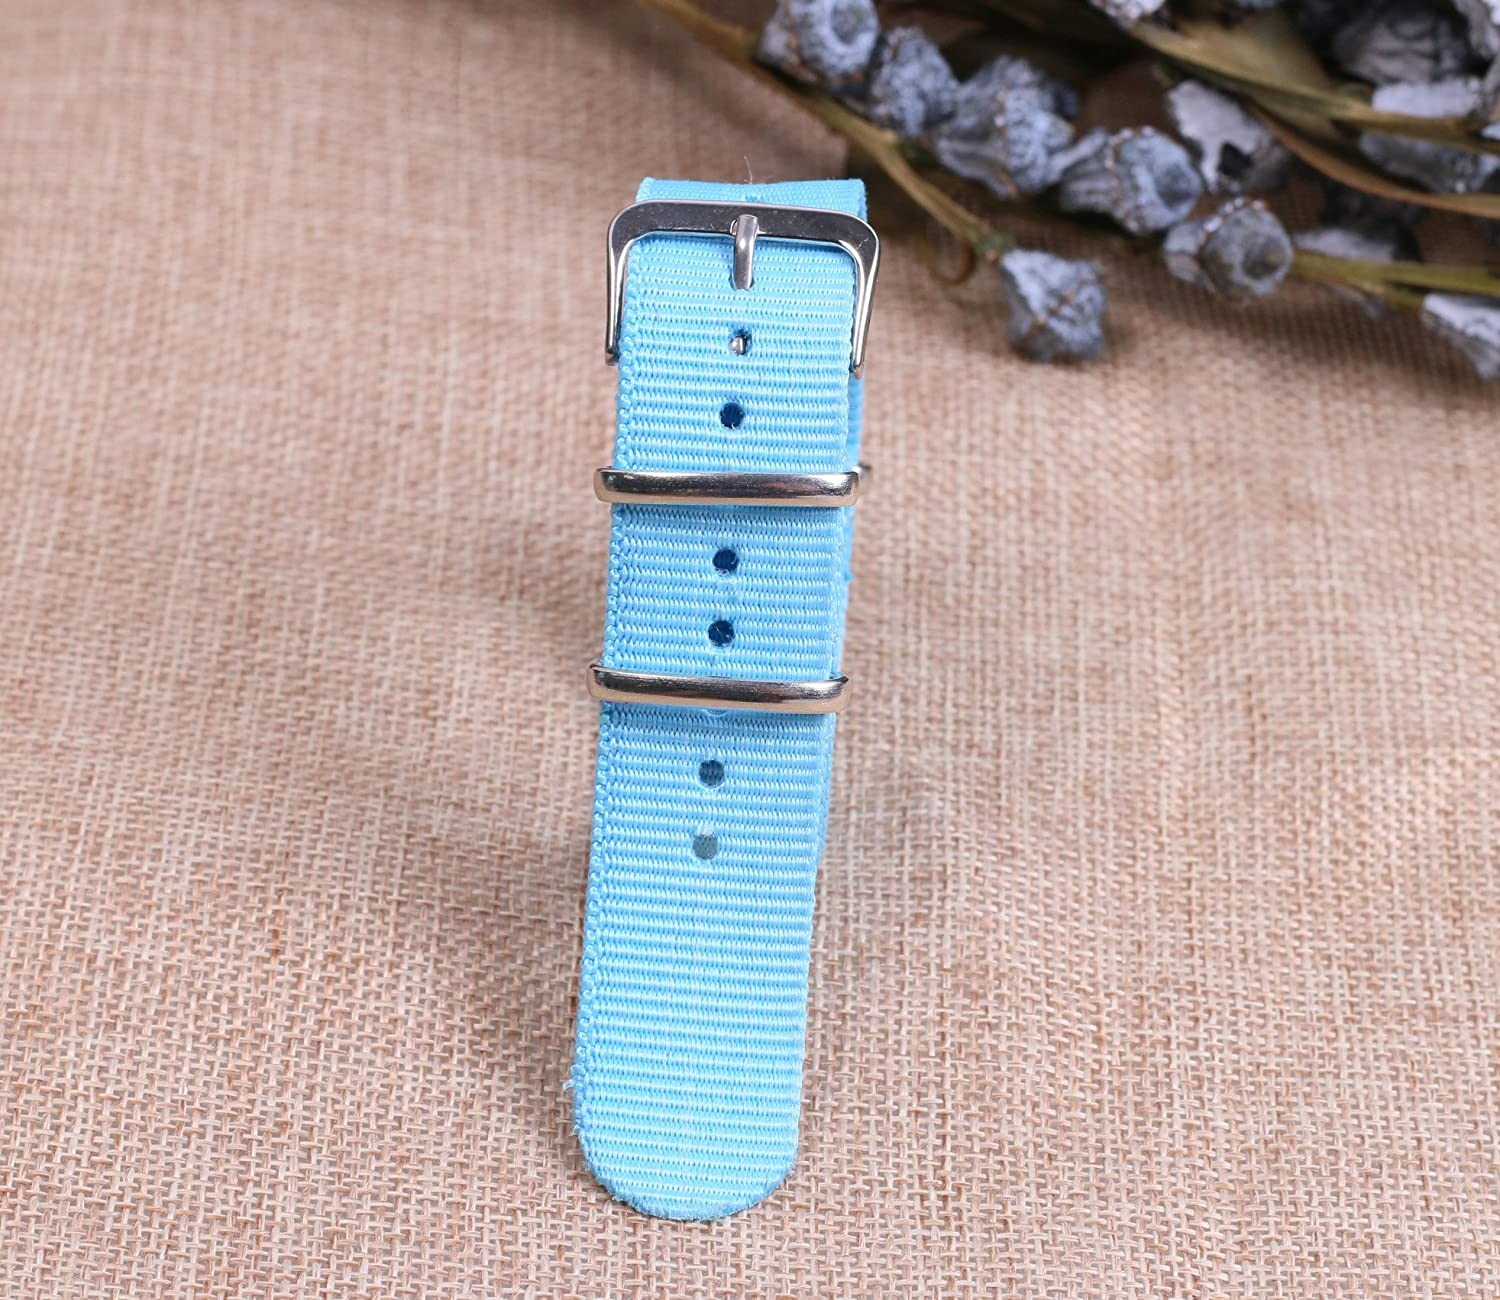 20mm Colorful Classic Breathable Men's One-Piece NATO Style Nylon Watch  Bands Straps for Men Women